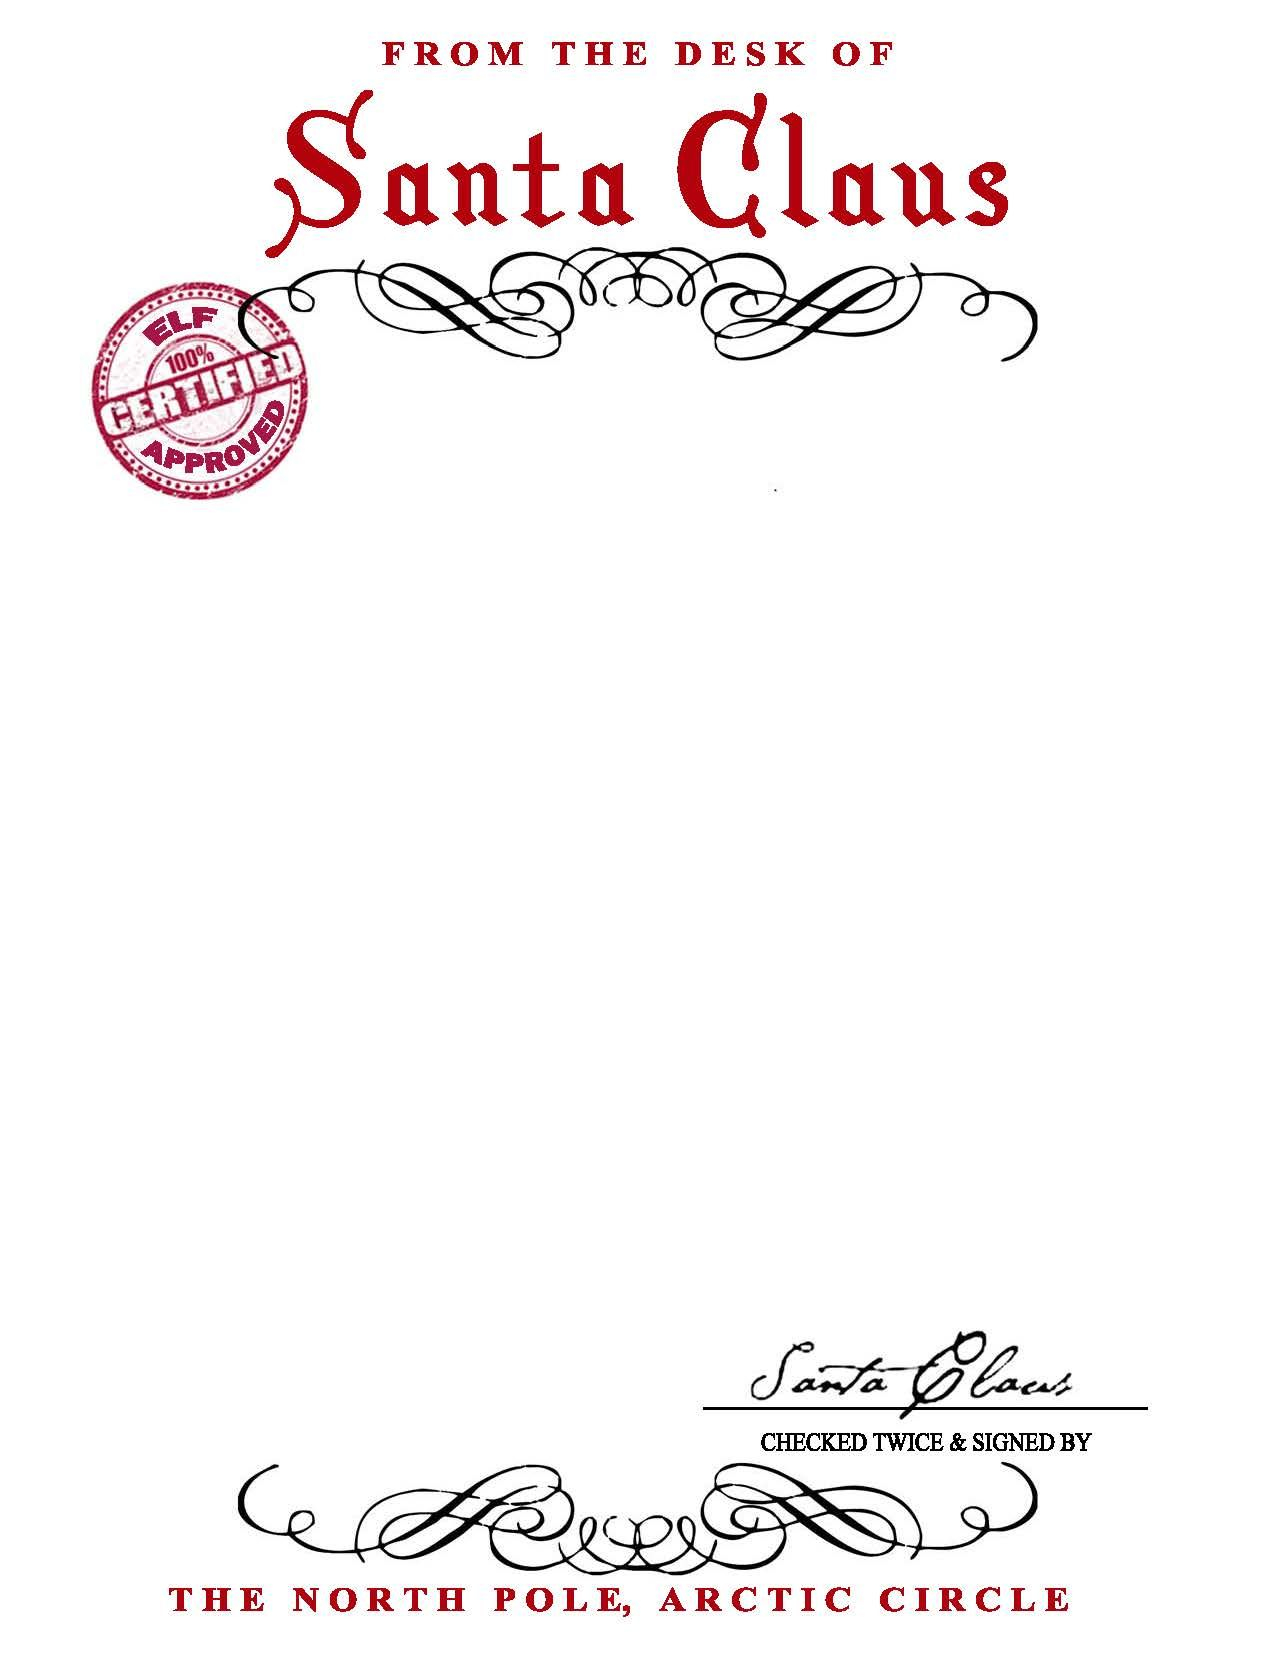 Santa Claus Letter Template - Santa Claus Letterhead Will Bring Lots Of Joy to Children